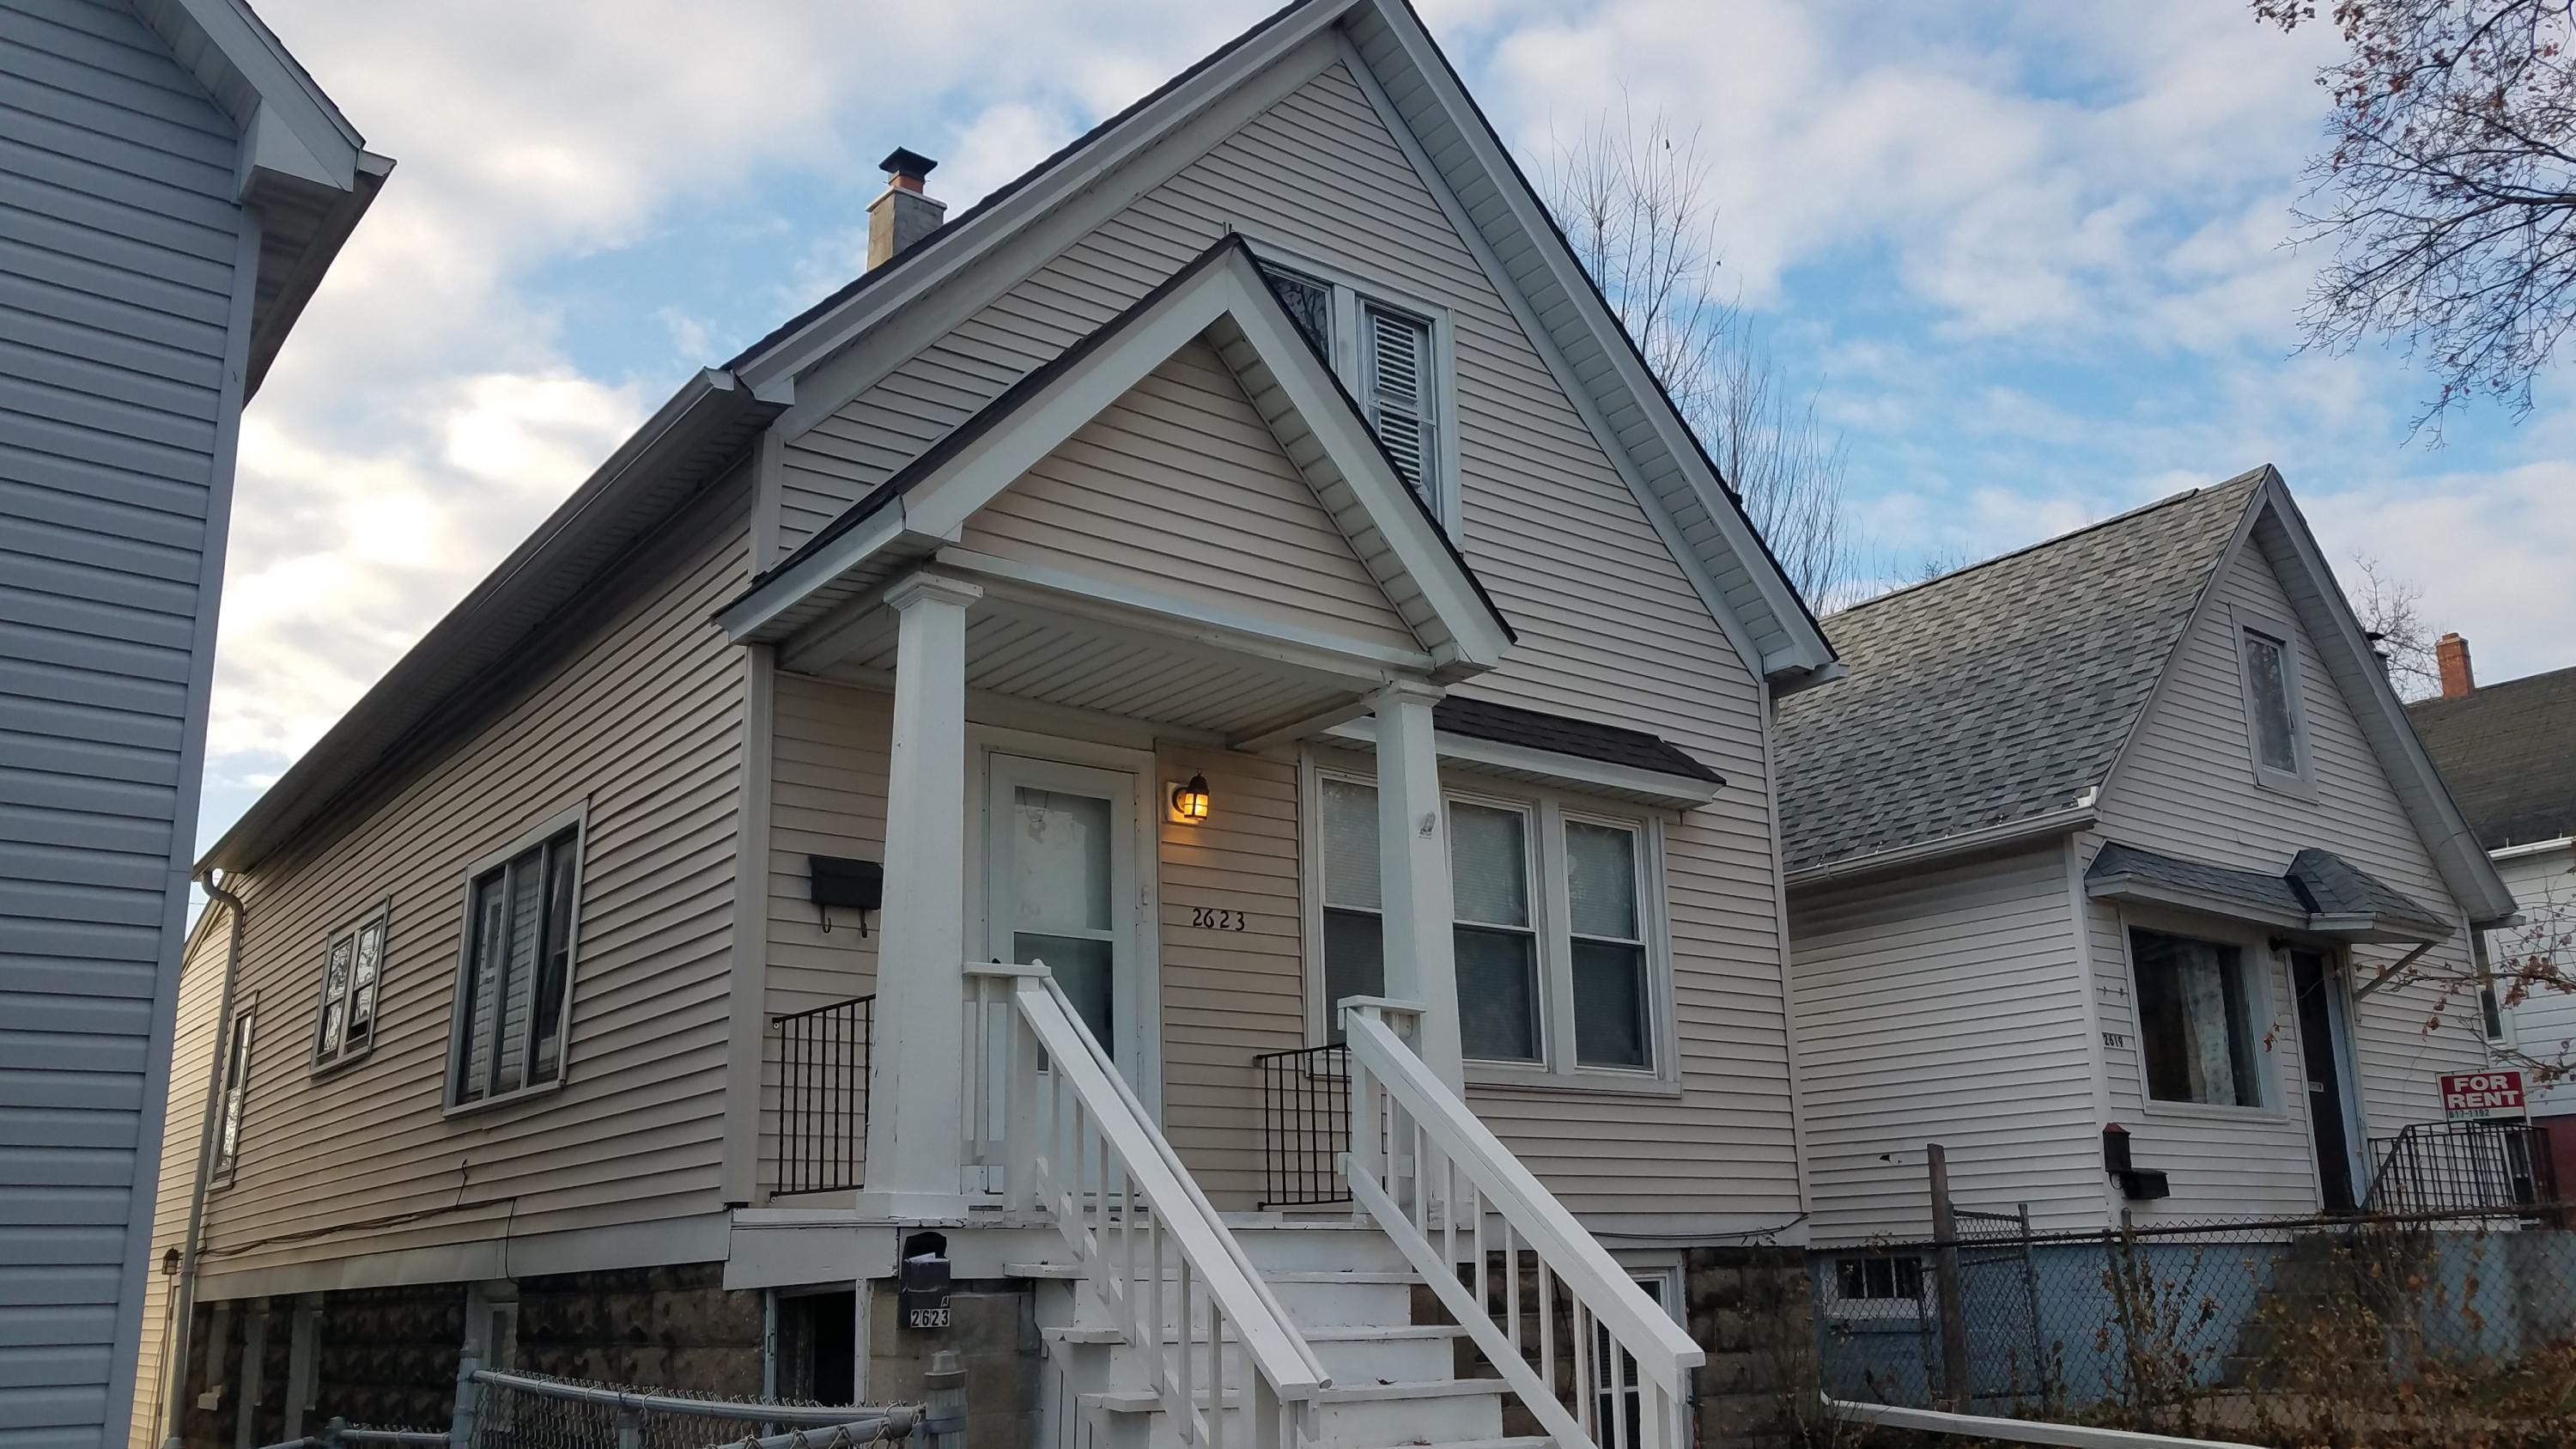 2623 7th, Milwaukee, Wisconsin 53215, 3 Bedrooms Bedrooms, 5 Rooms Rooms,1 BathroomBathrooms,Two-Family,For Sale,7th,1,1669568